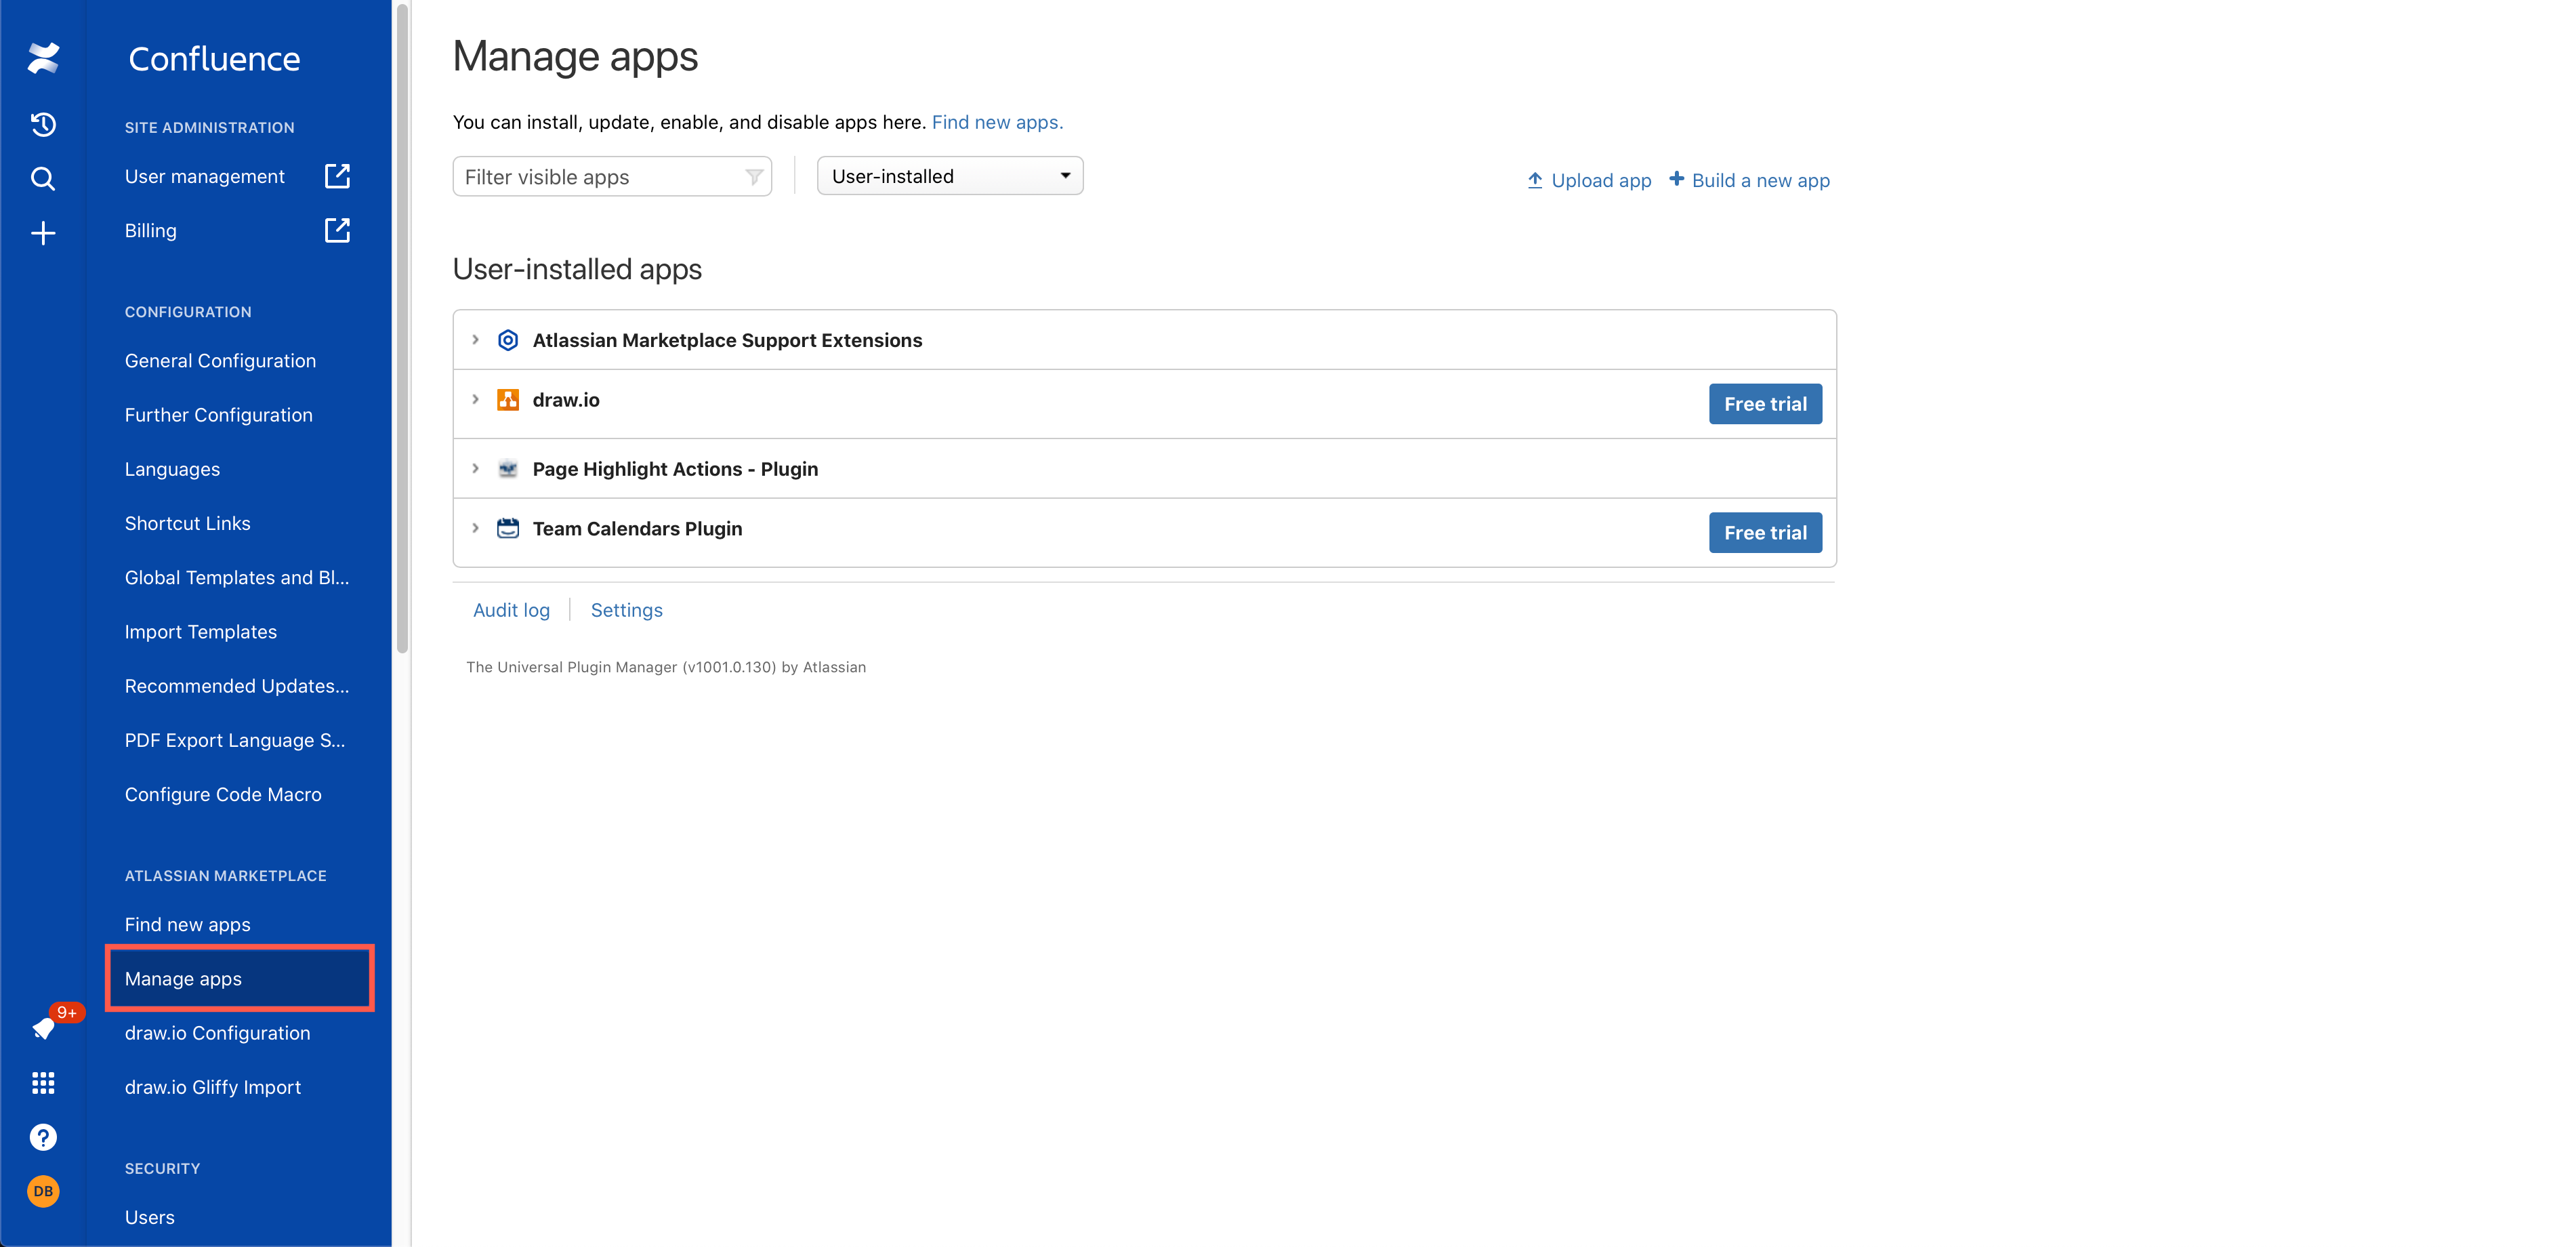 Manage the apps that are installed in your Confluence Cloud instance via Settings